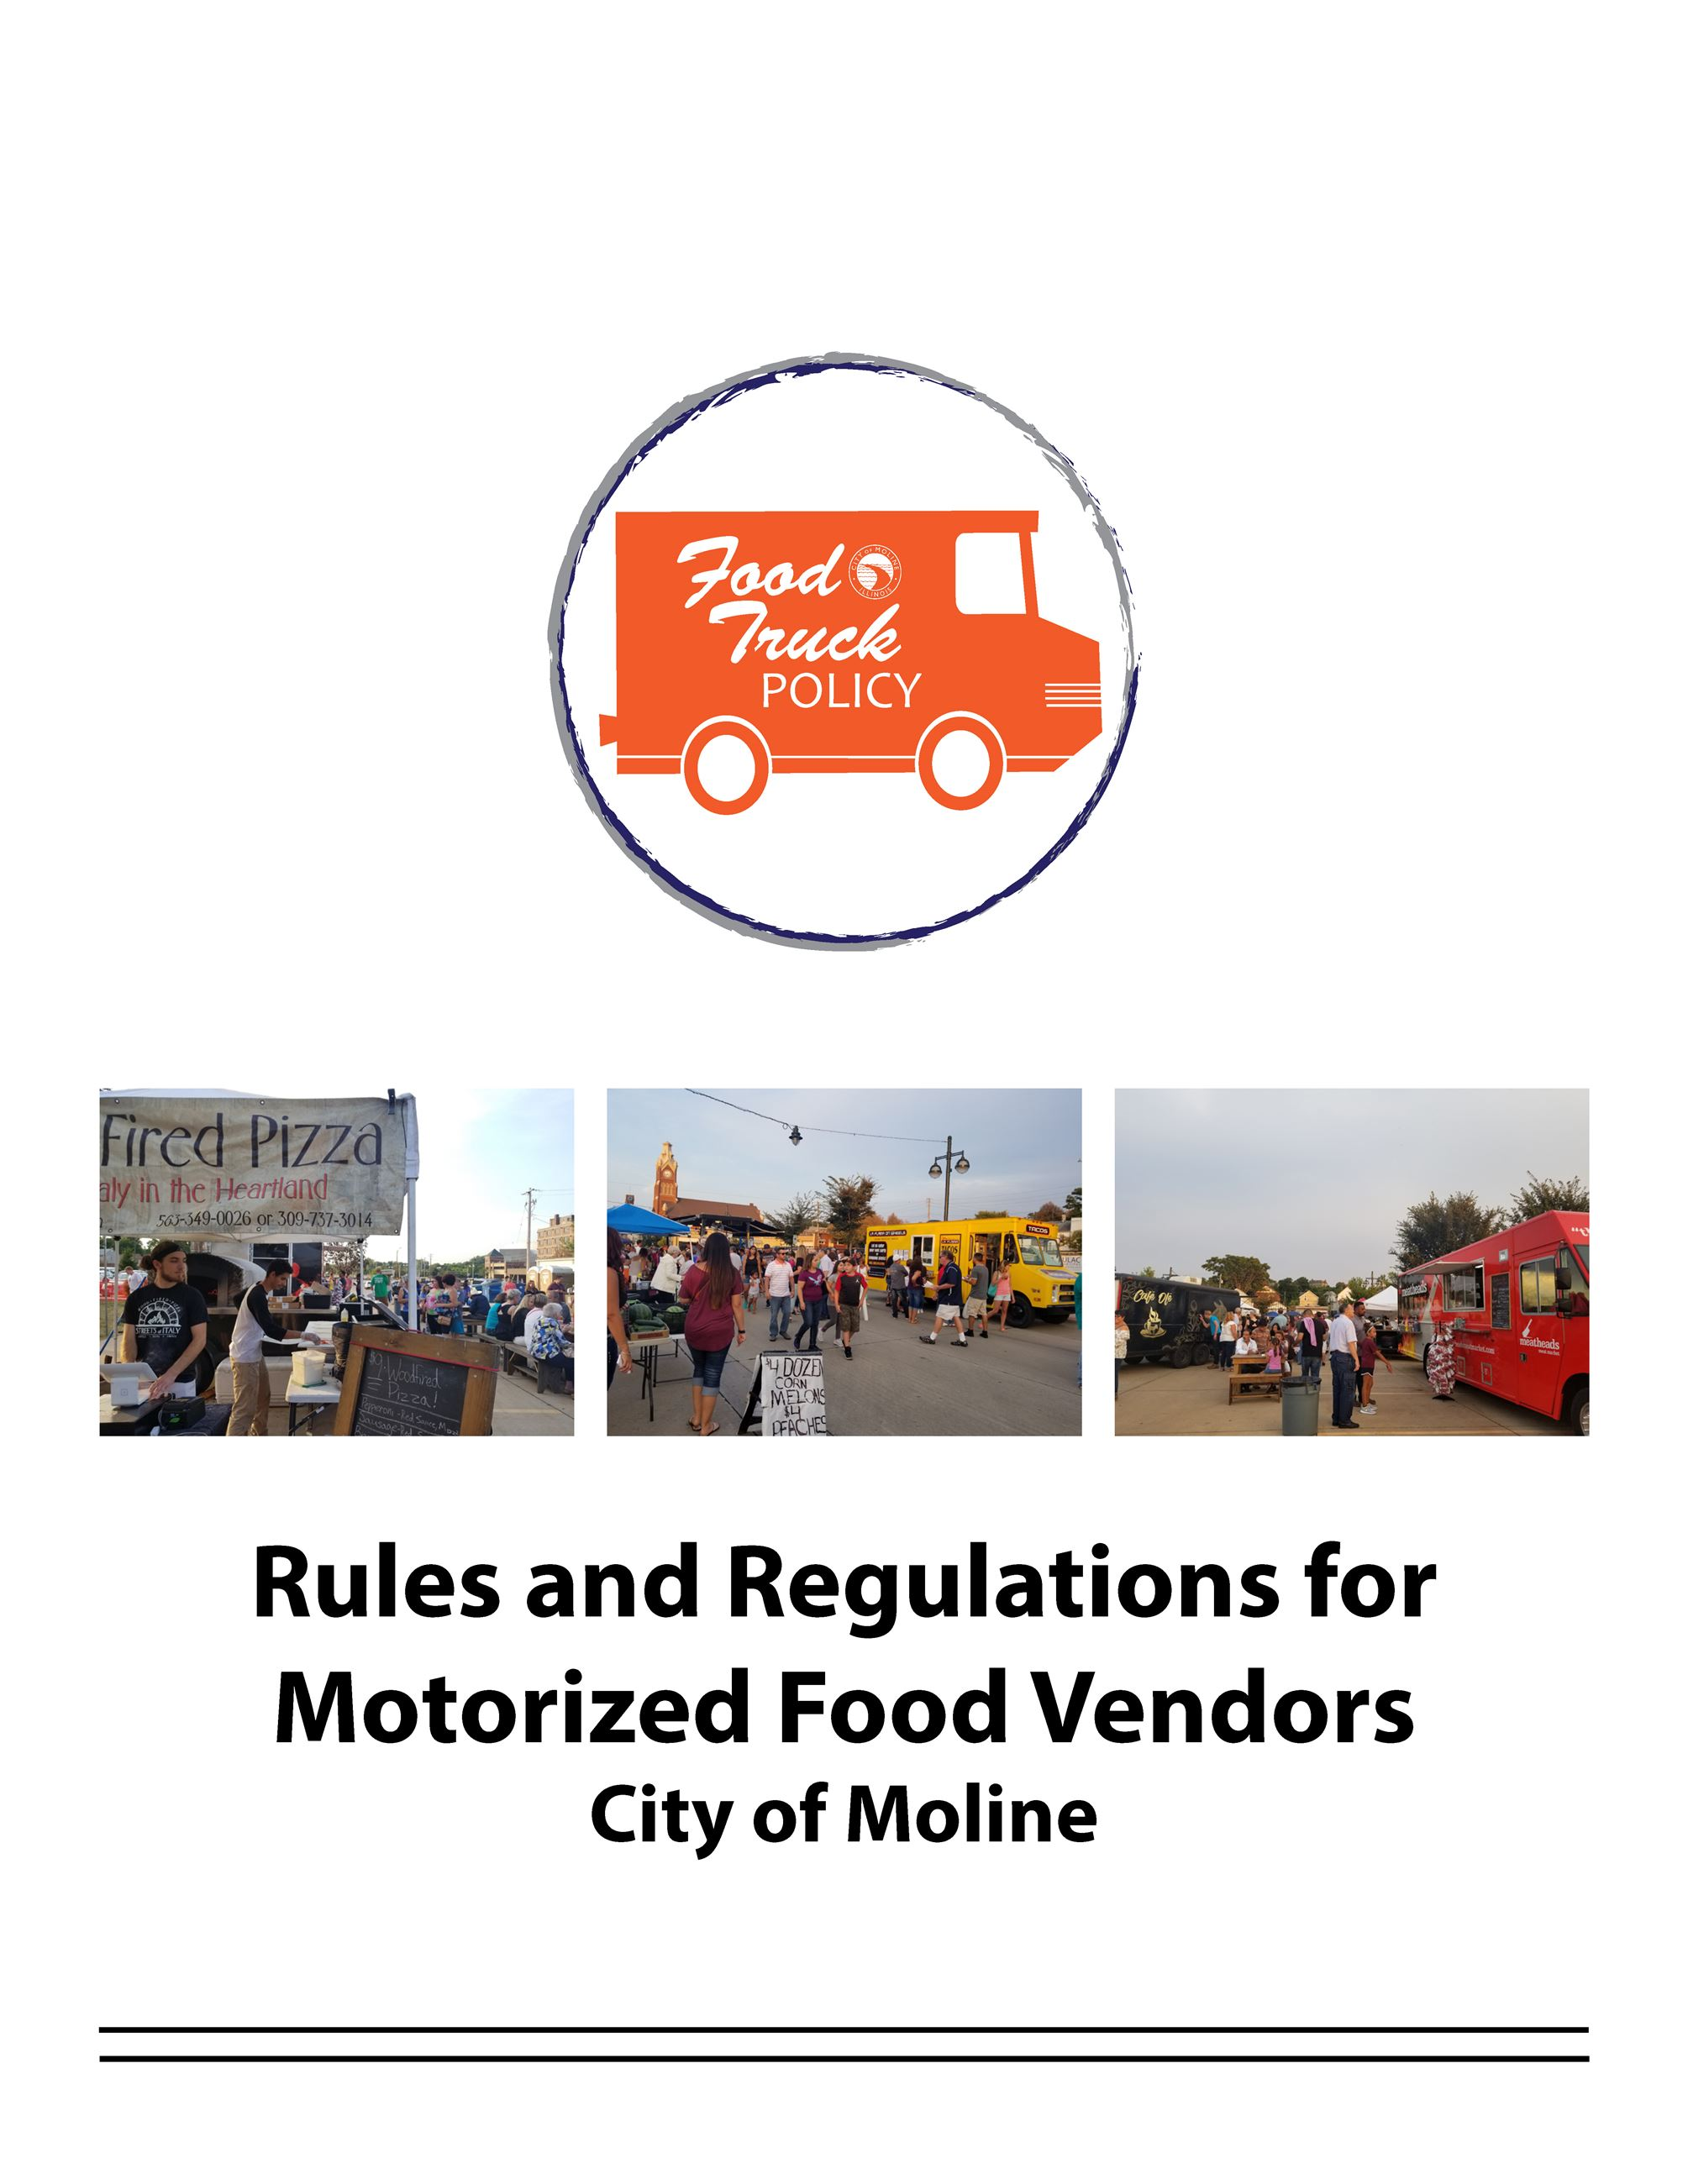 Food Truck Policy